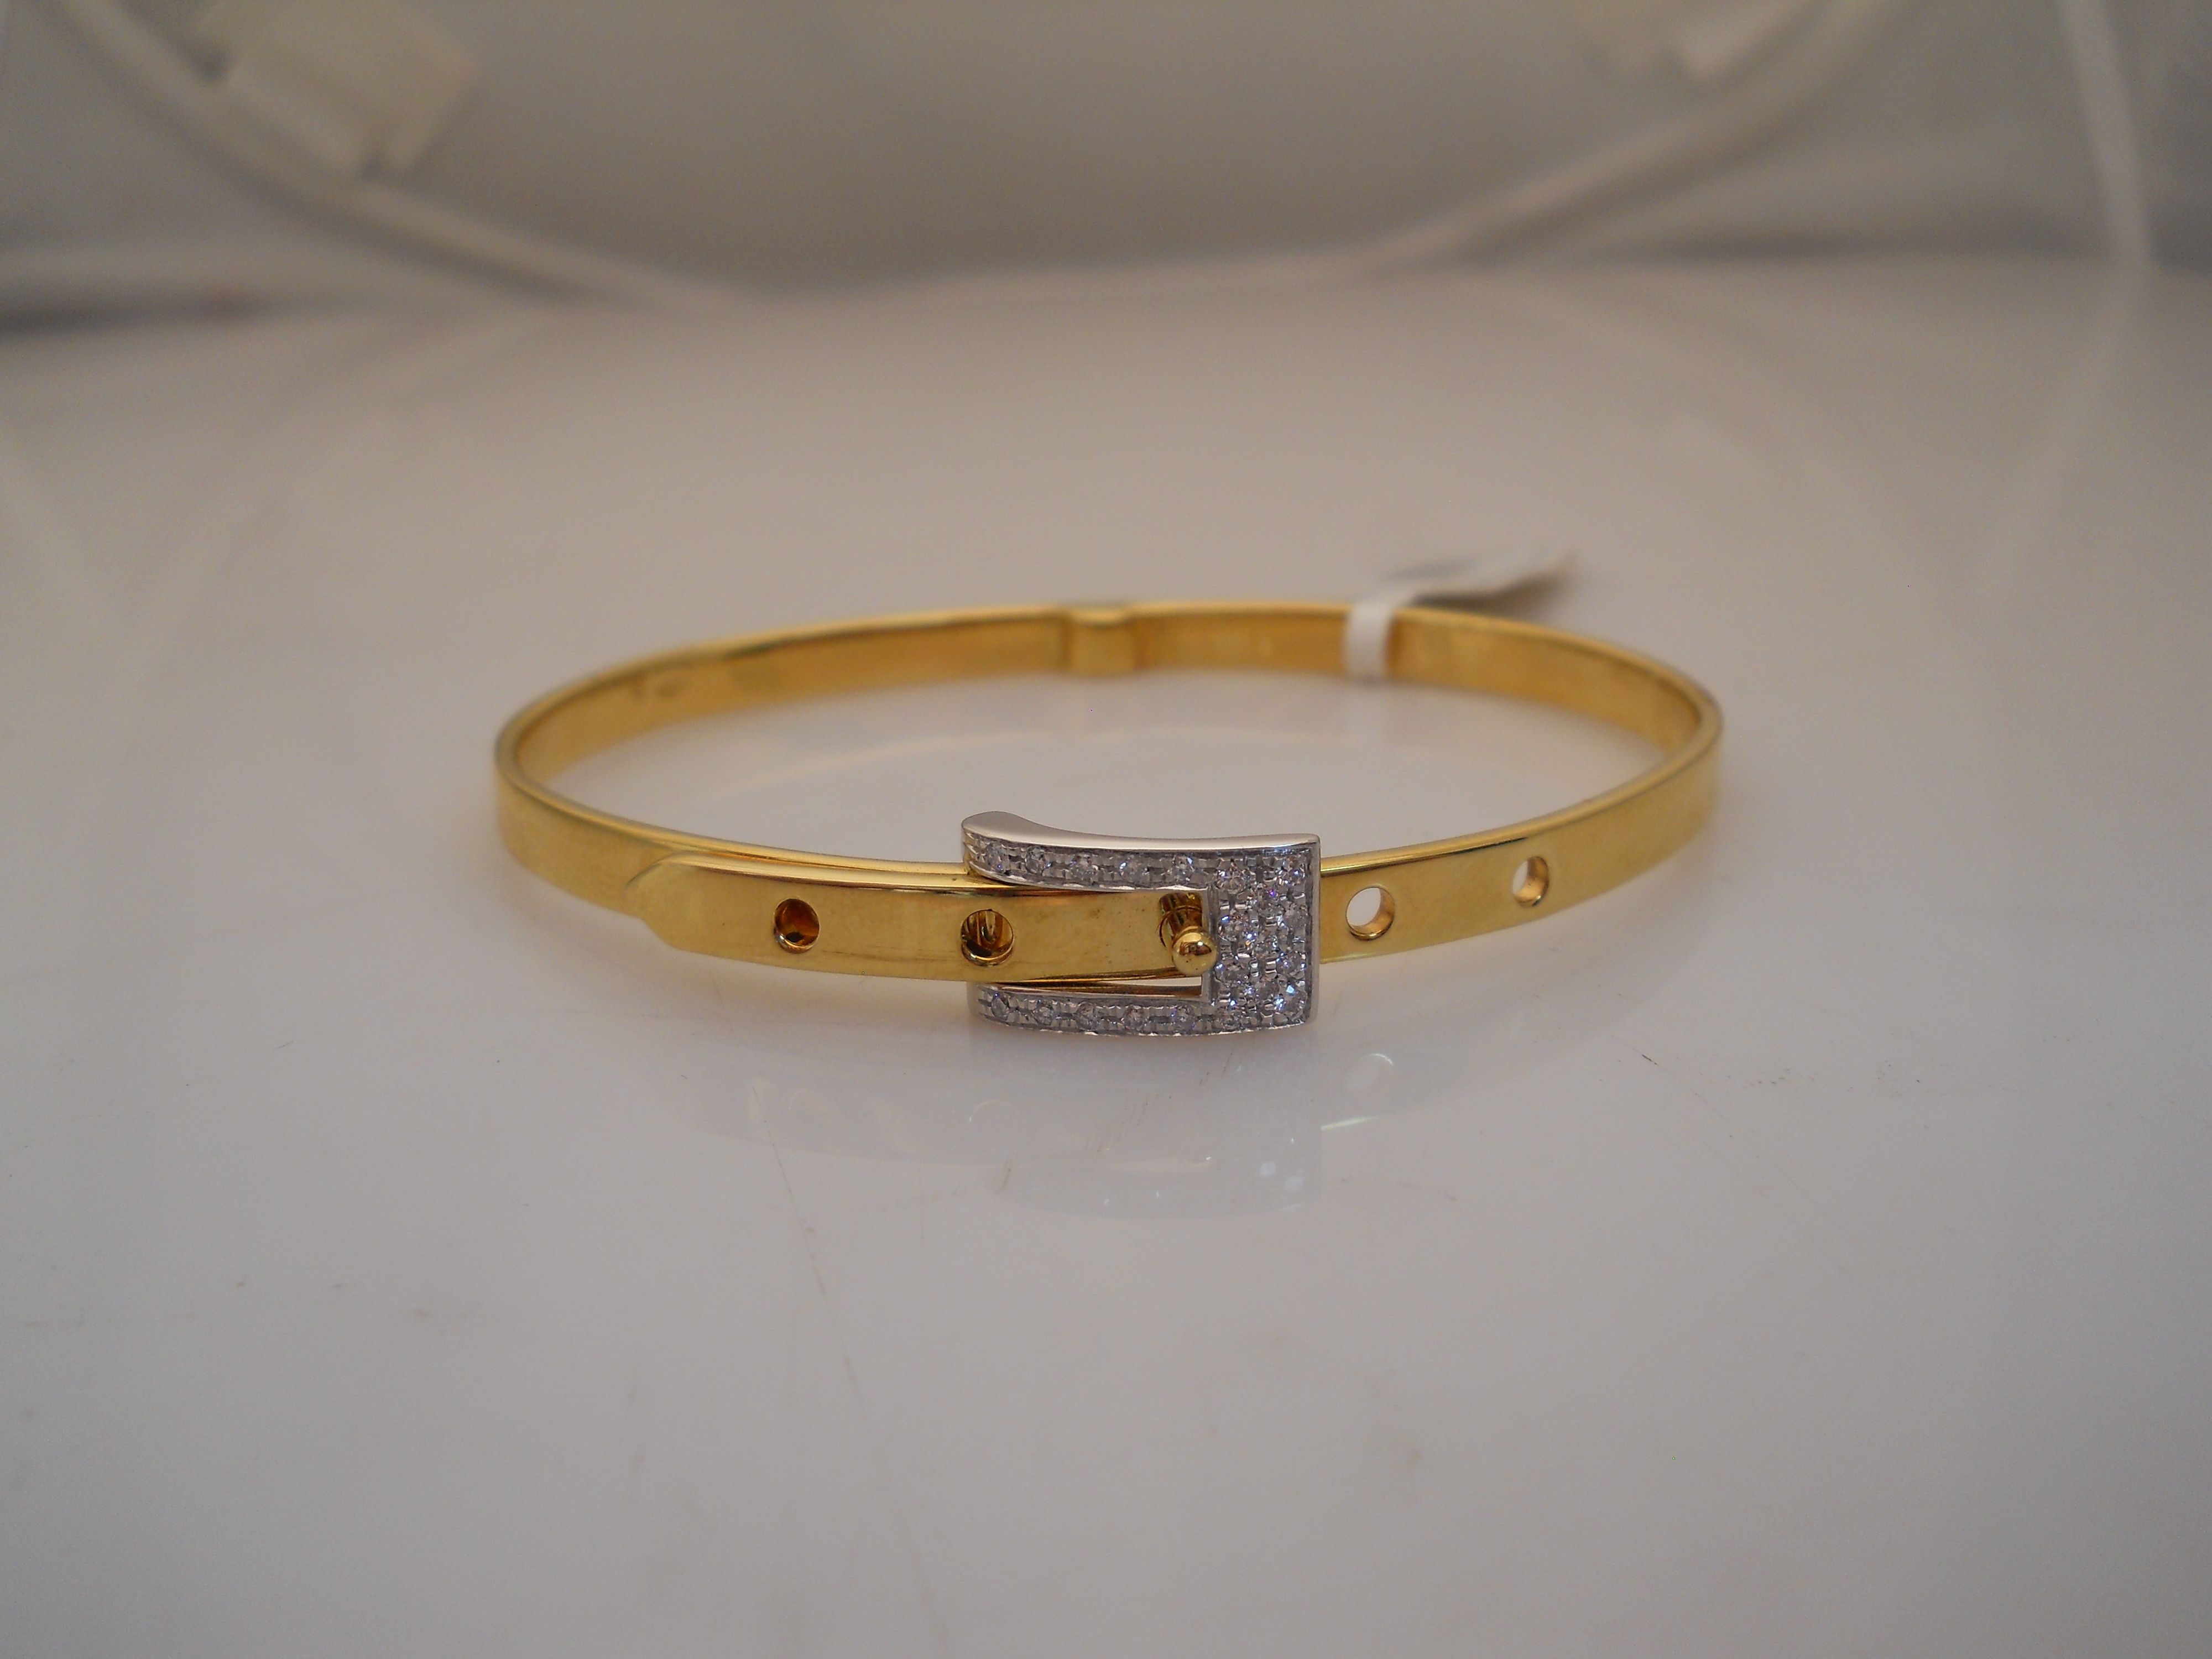 """18 karat yellow and white gold """"Buckle"""" bracelet $1,395  (call us for more info toll free at 1-877-422-7979)"""